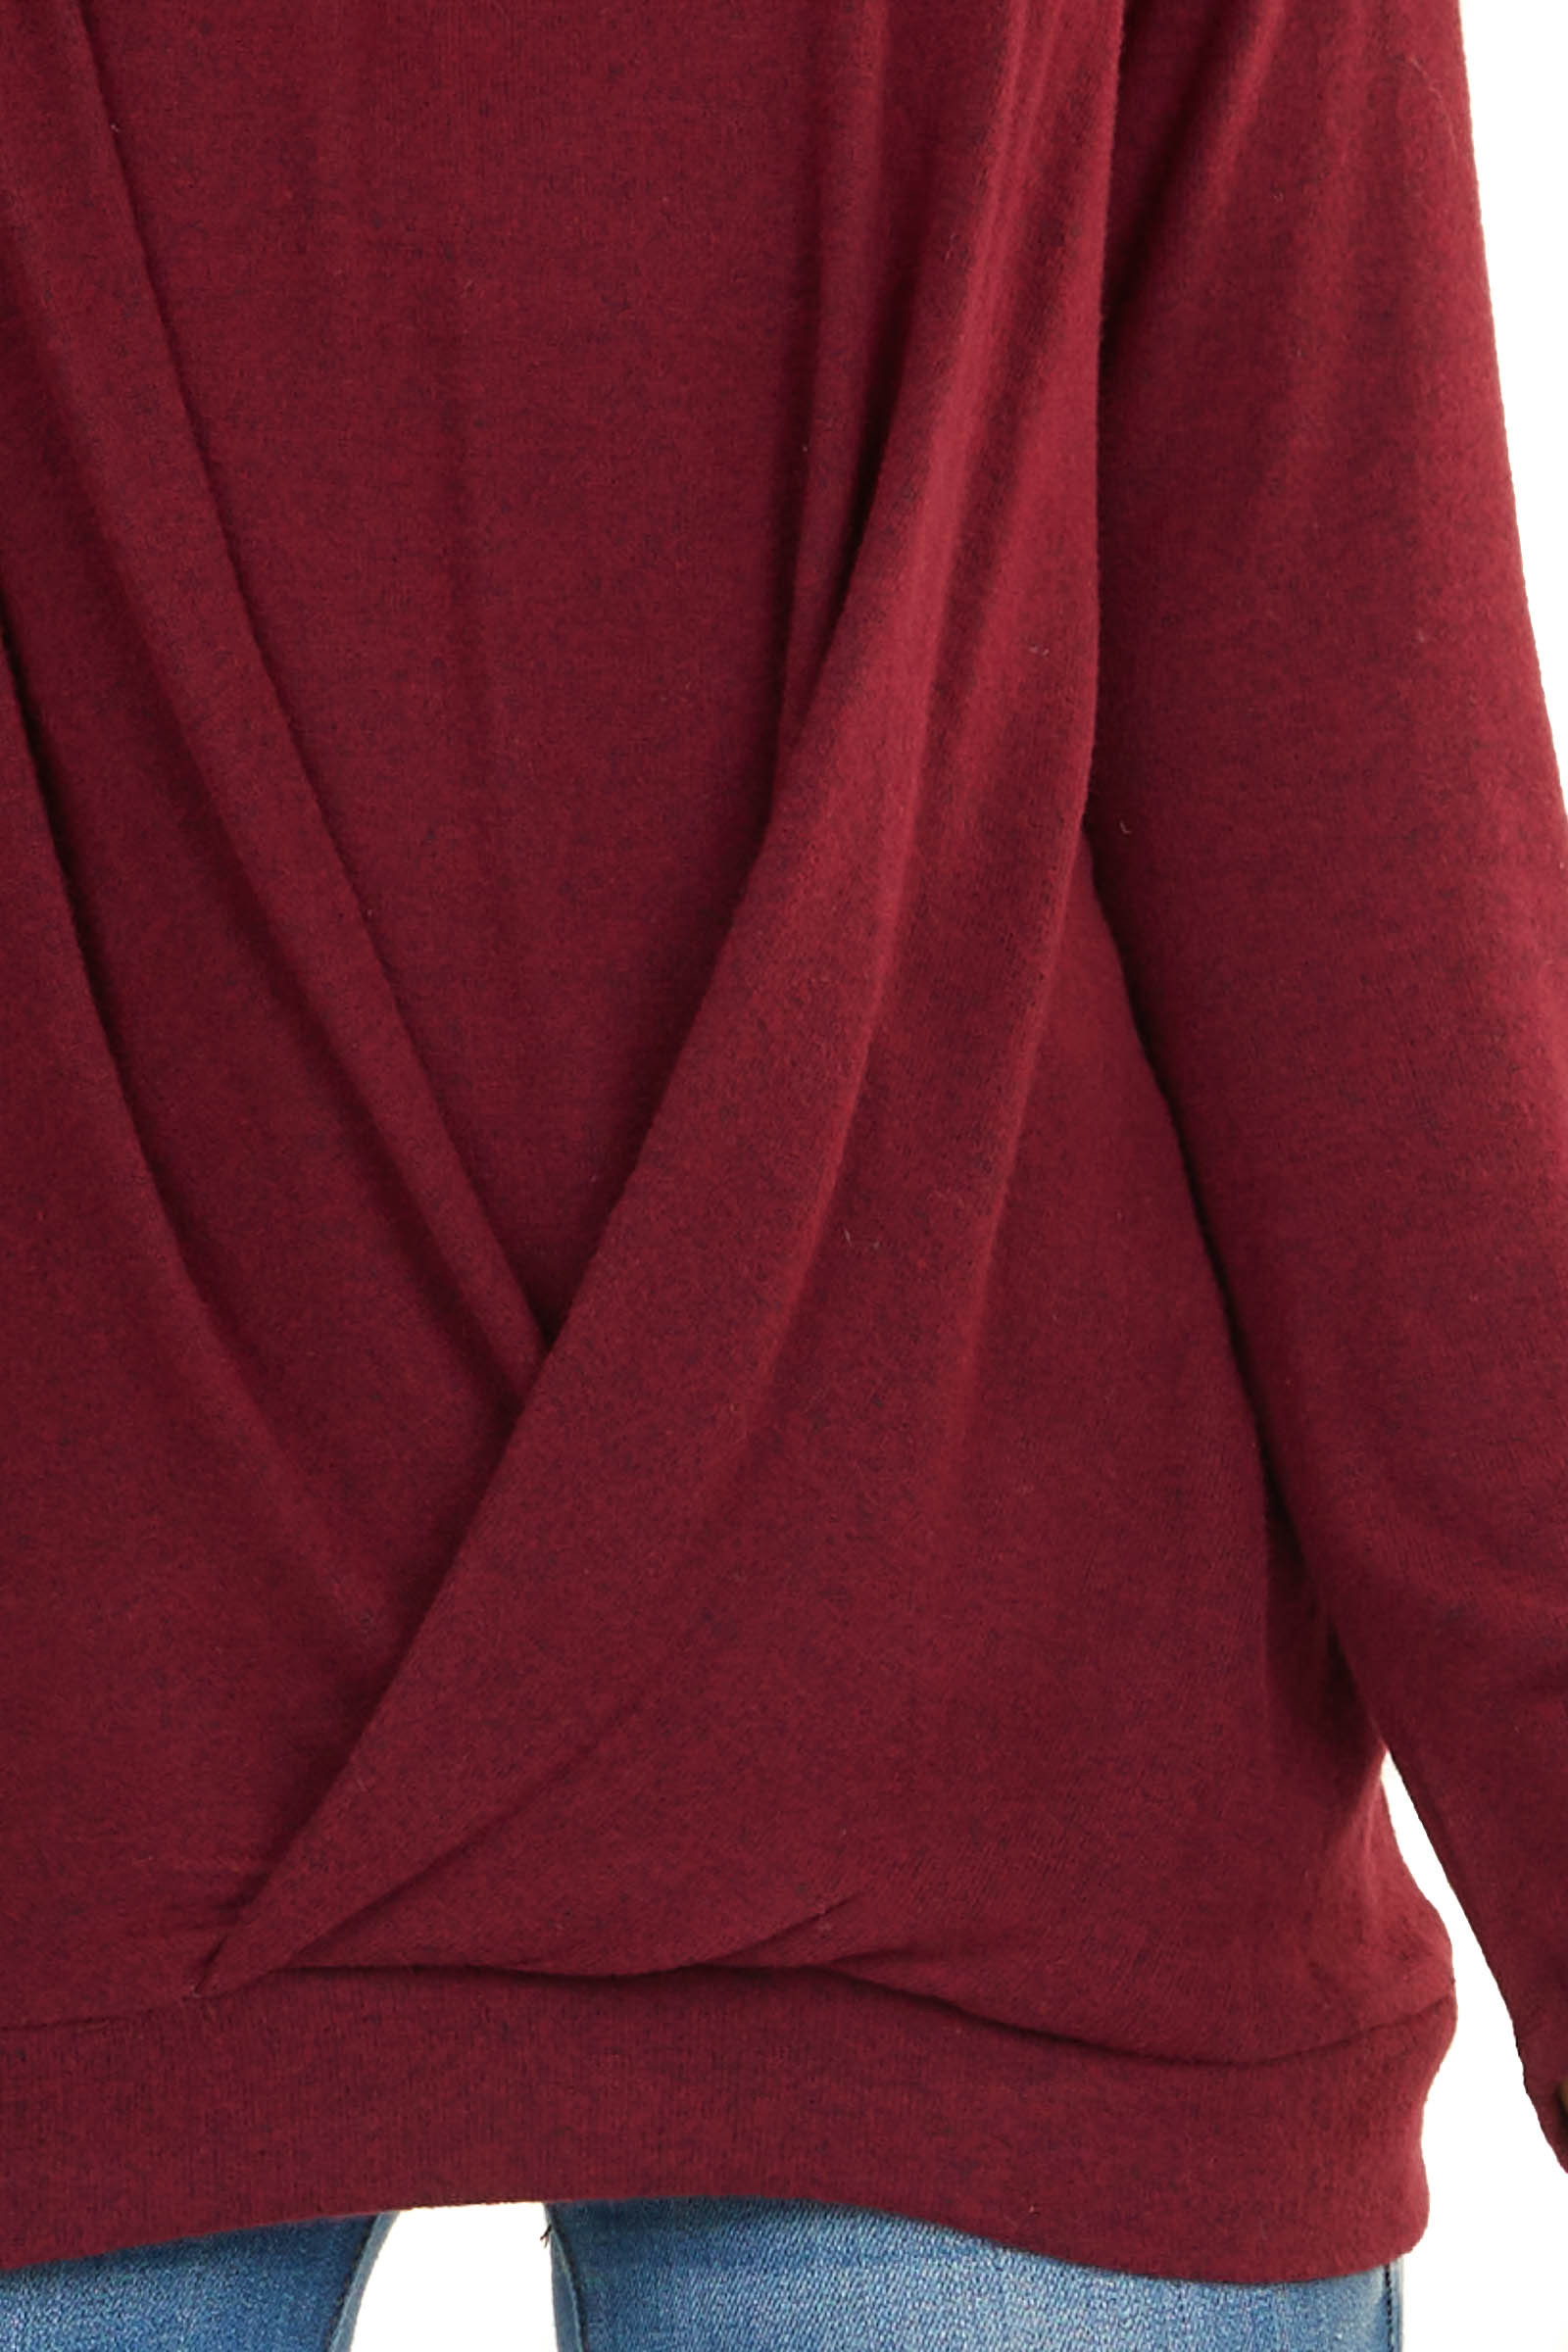 Heathered Burgundy Long Sleeve Top with Front Twist Details